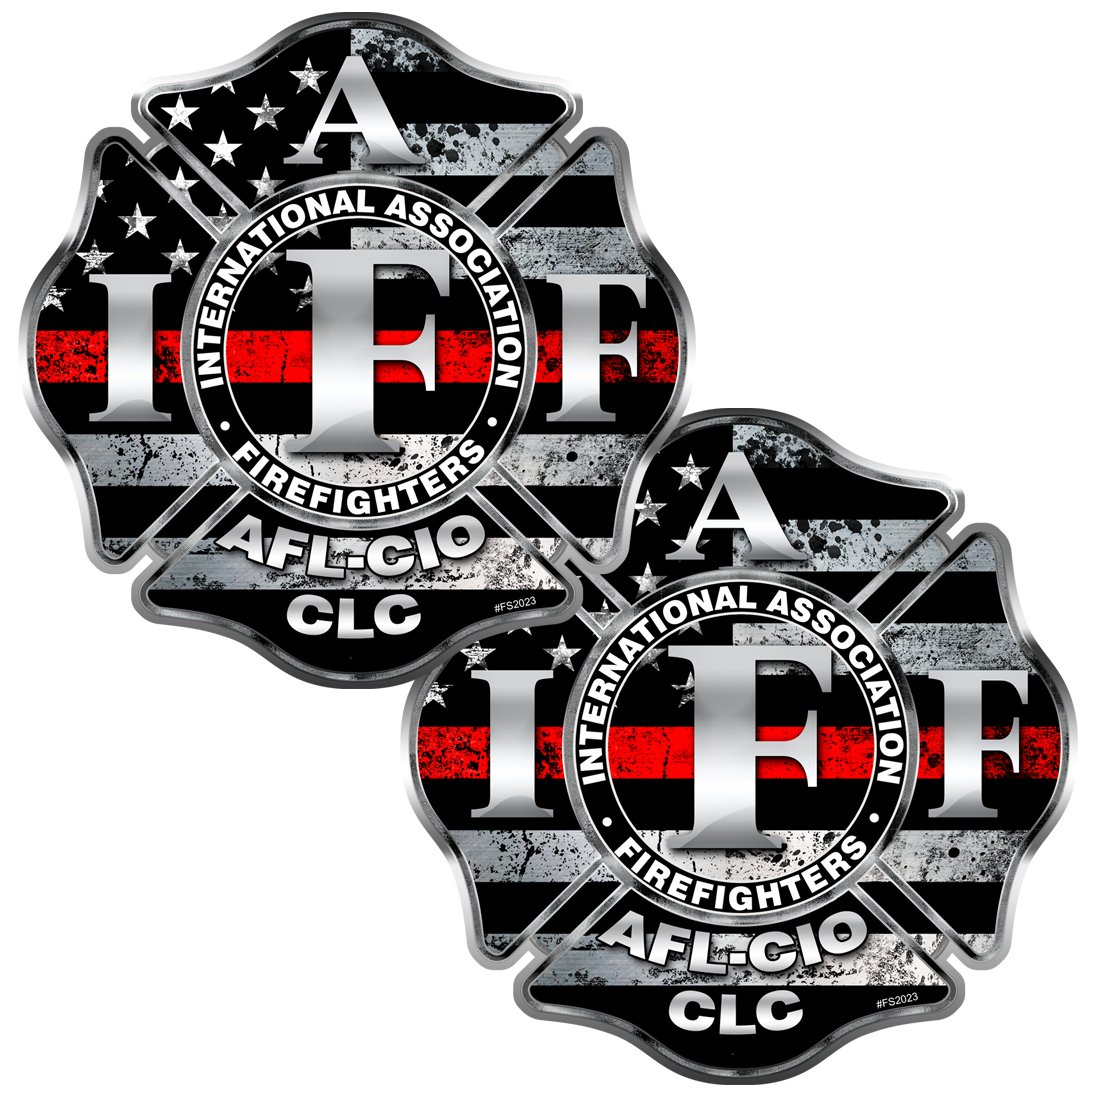 Graphics and More Personalized Custom 1 Line Firefighter Maltese Cross Fire Rescue Oval Tow Hitch Cover Trailer Plug Insert 2